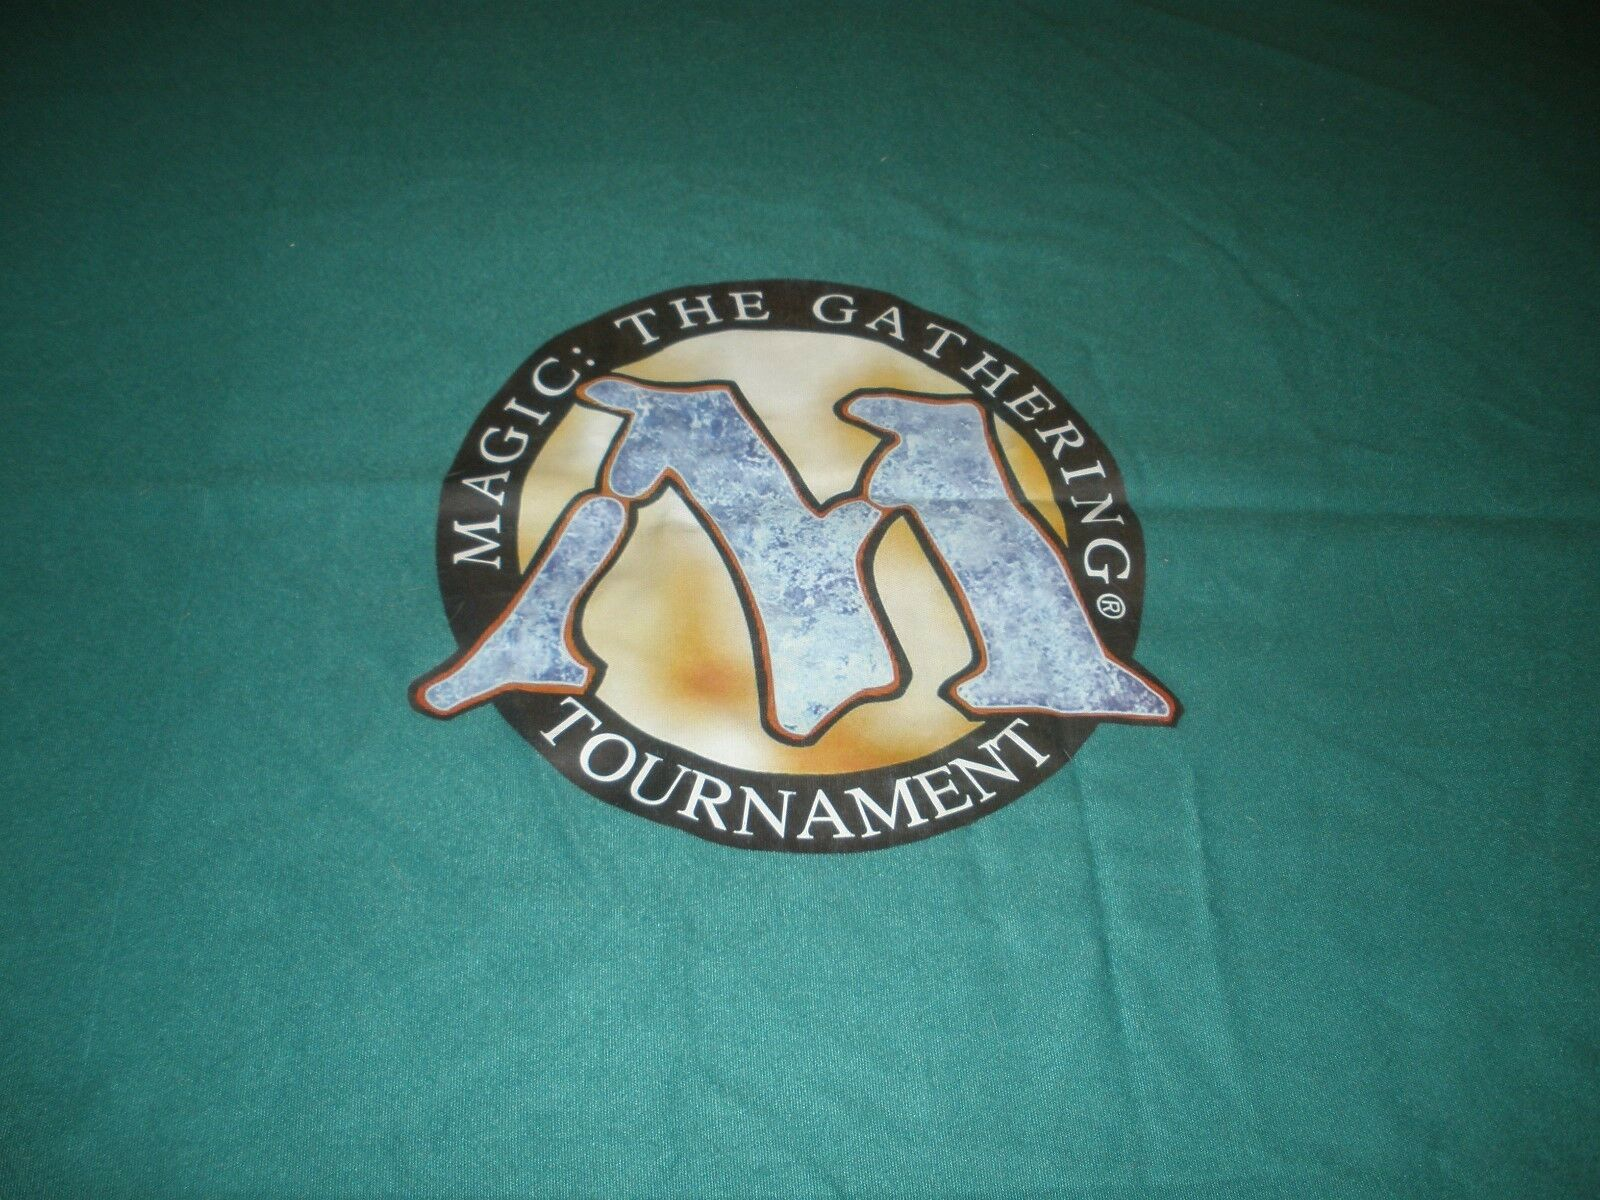 MTG Magic  The Gathering Tournament Table Cloth Cloth Cloth 4 x 10 Great Condition  24259a